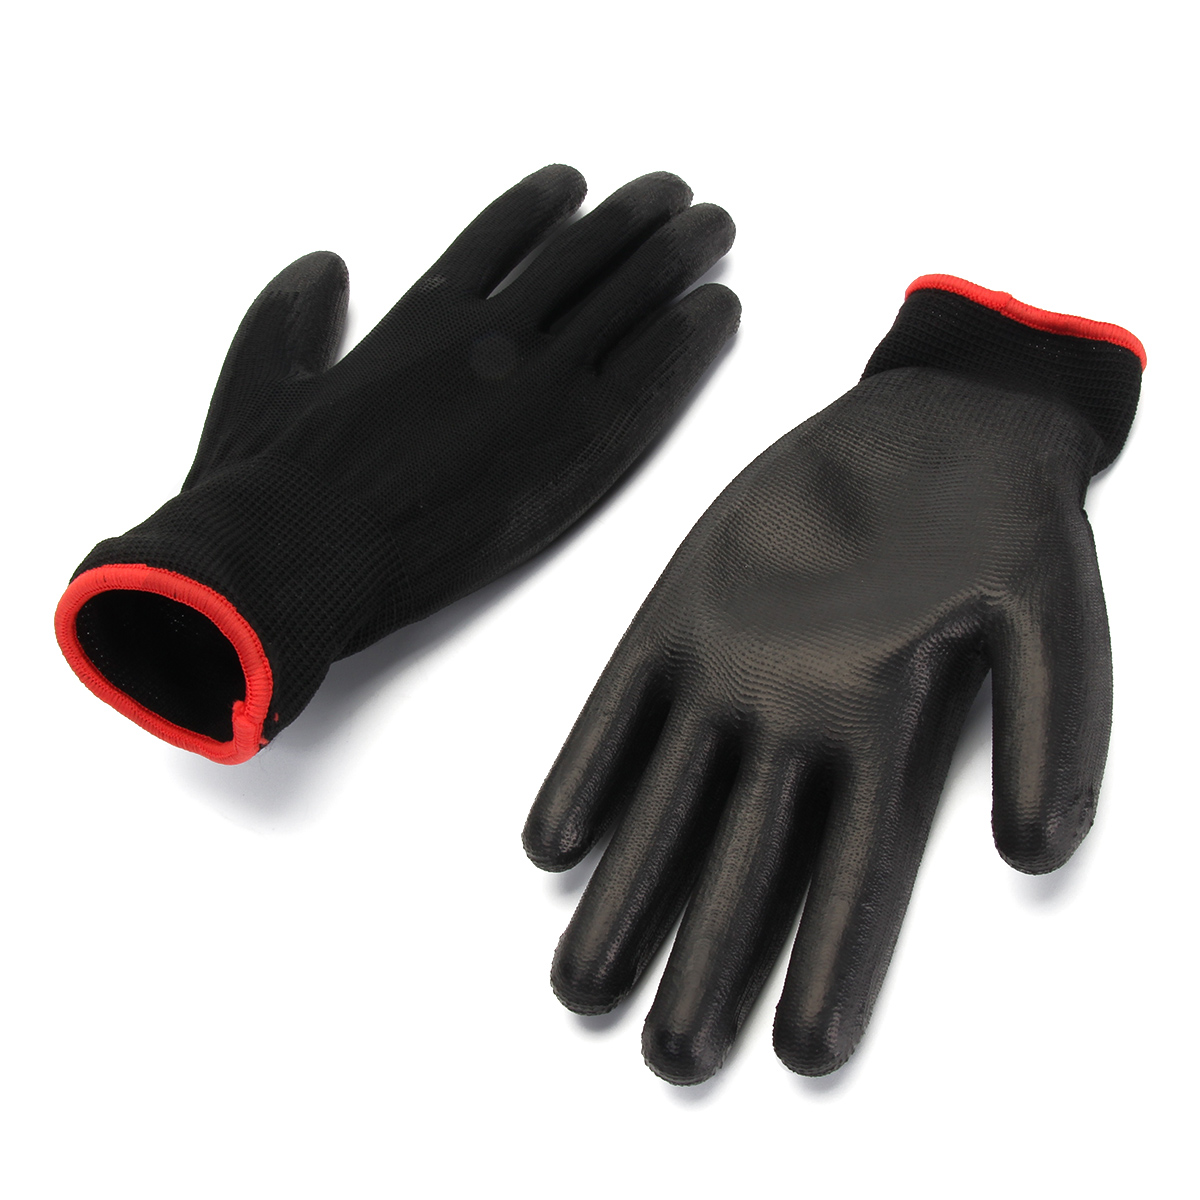 Gloves xride protect review